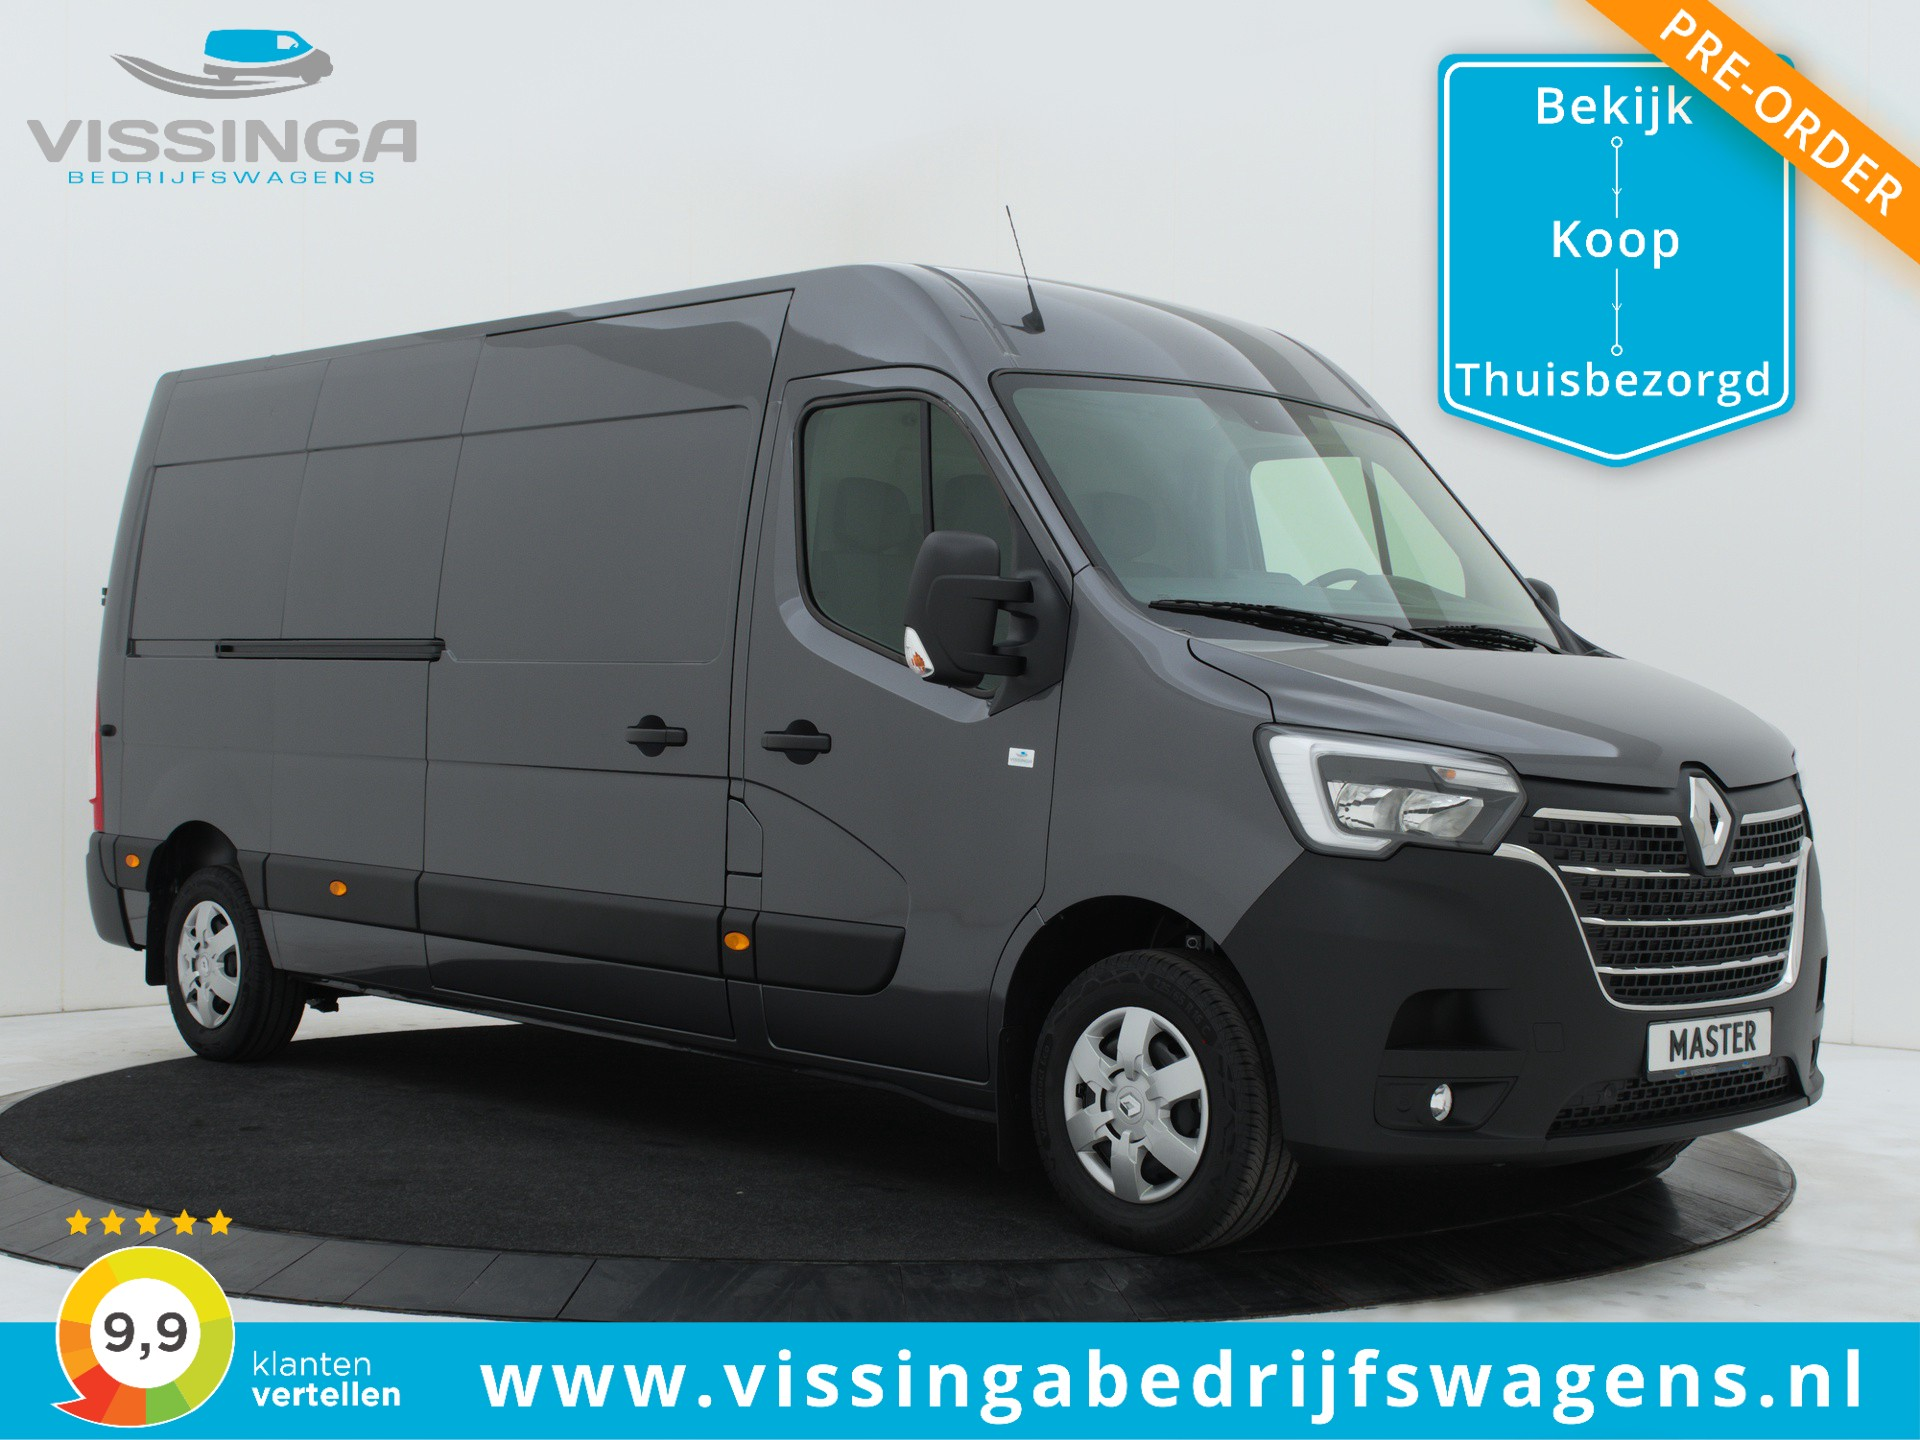 Renault Master T35 2.3 dCi L3H2 150 pk Twin-Turbo Energy